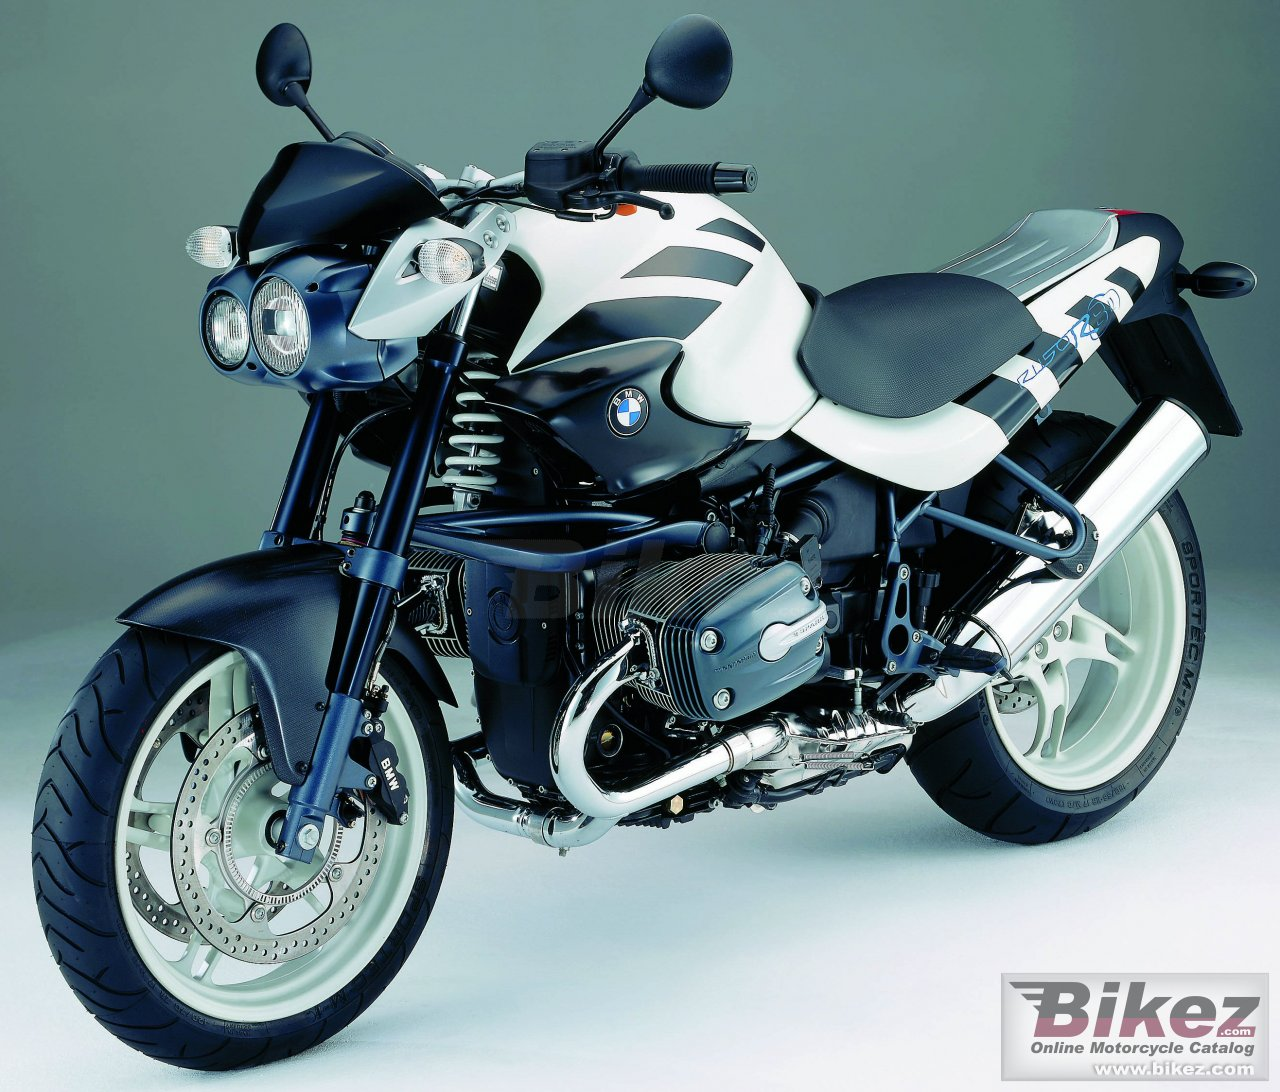 Big BMW r 1150 r rockster picture and wallpaper from Bikez.com